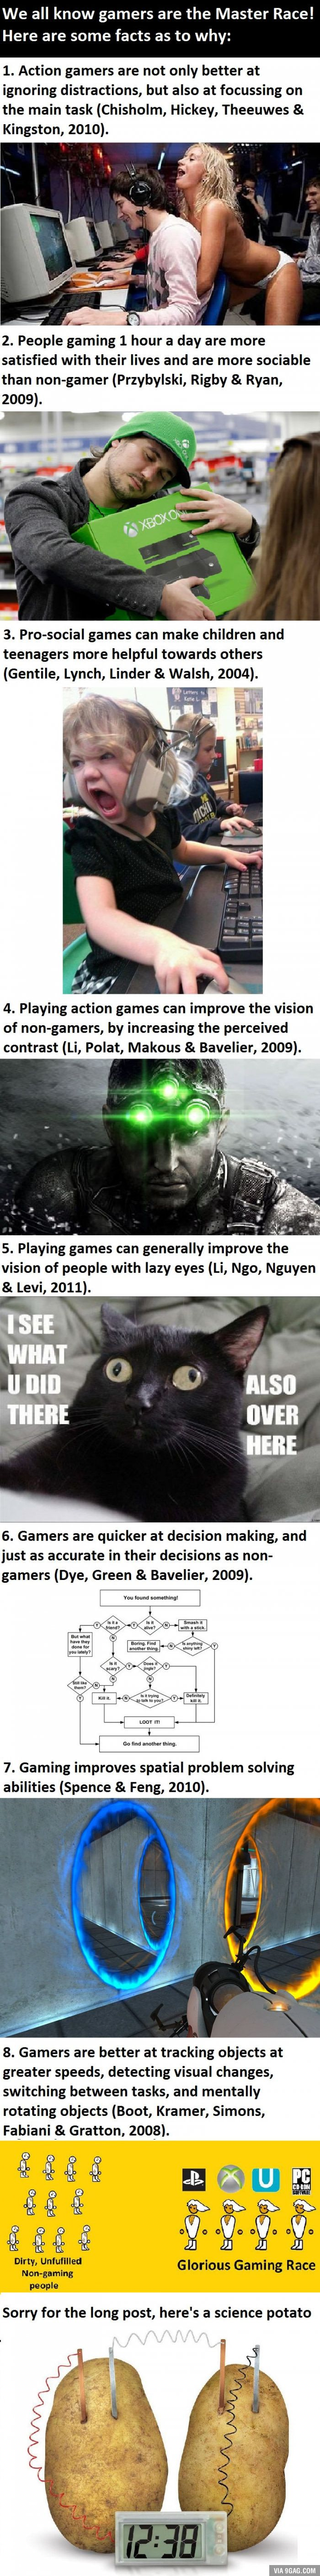 Power of Gaming (Part 1)